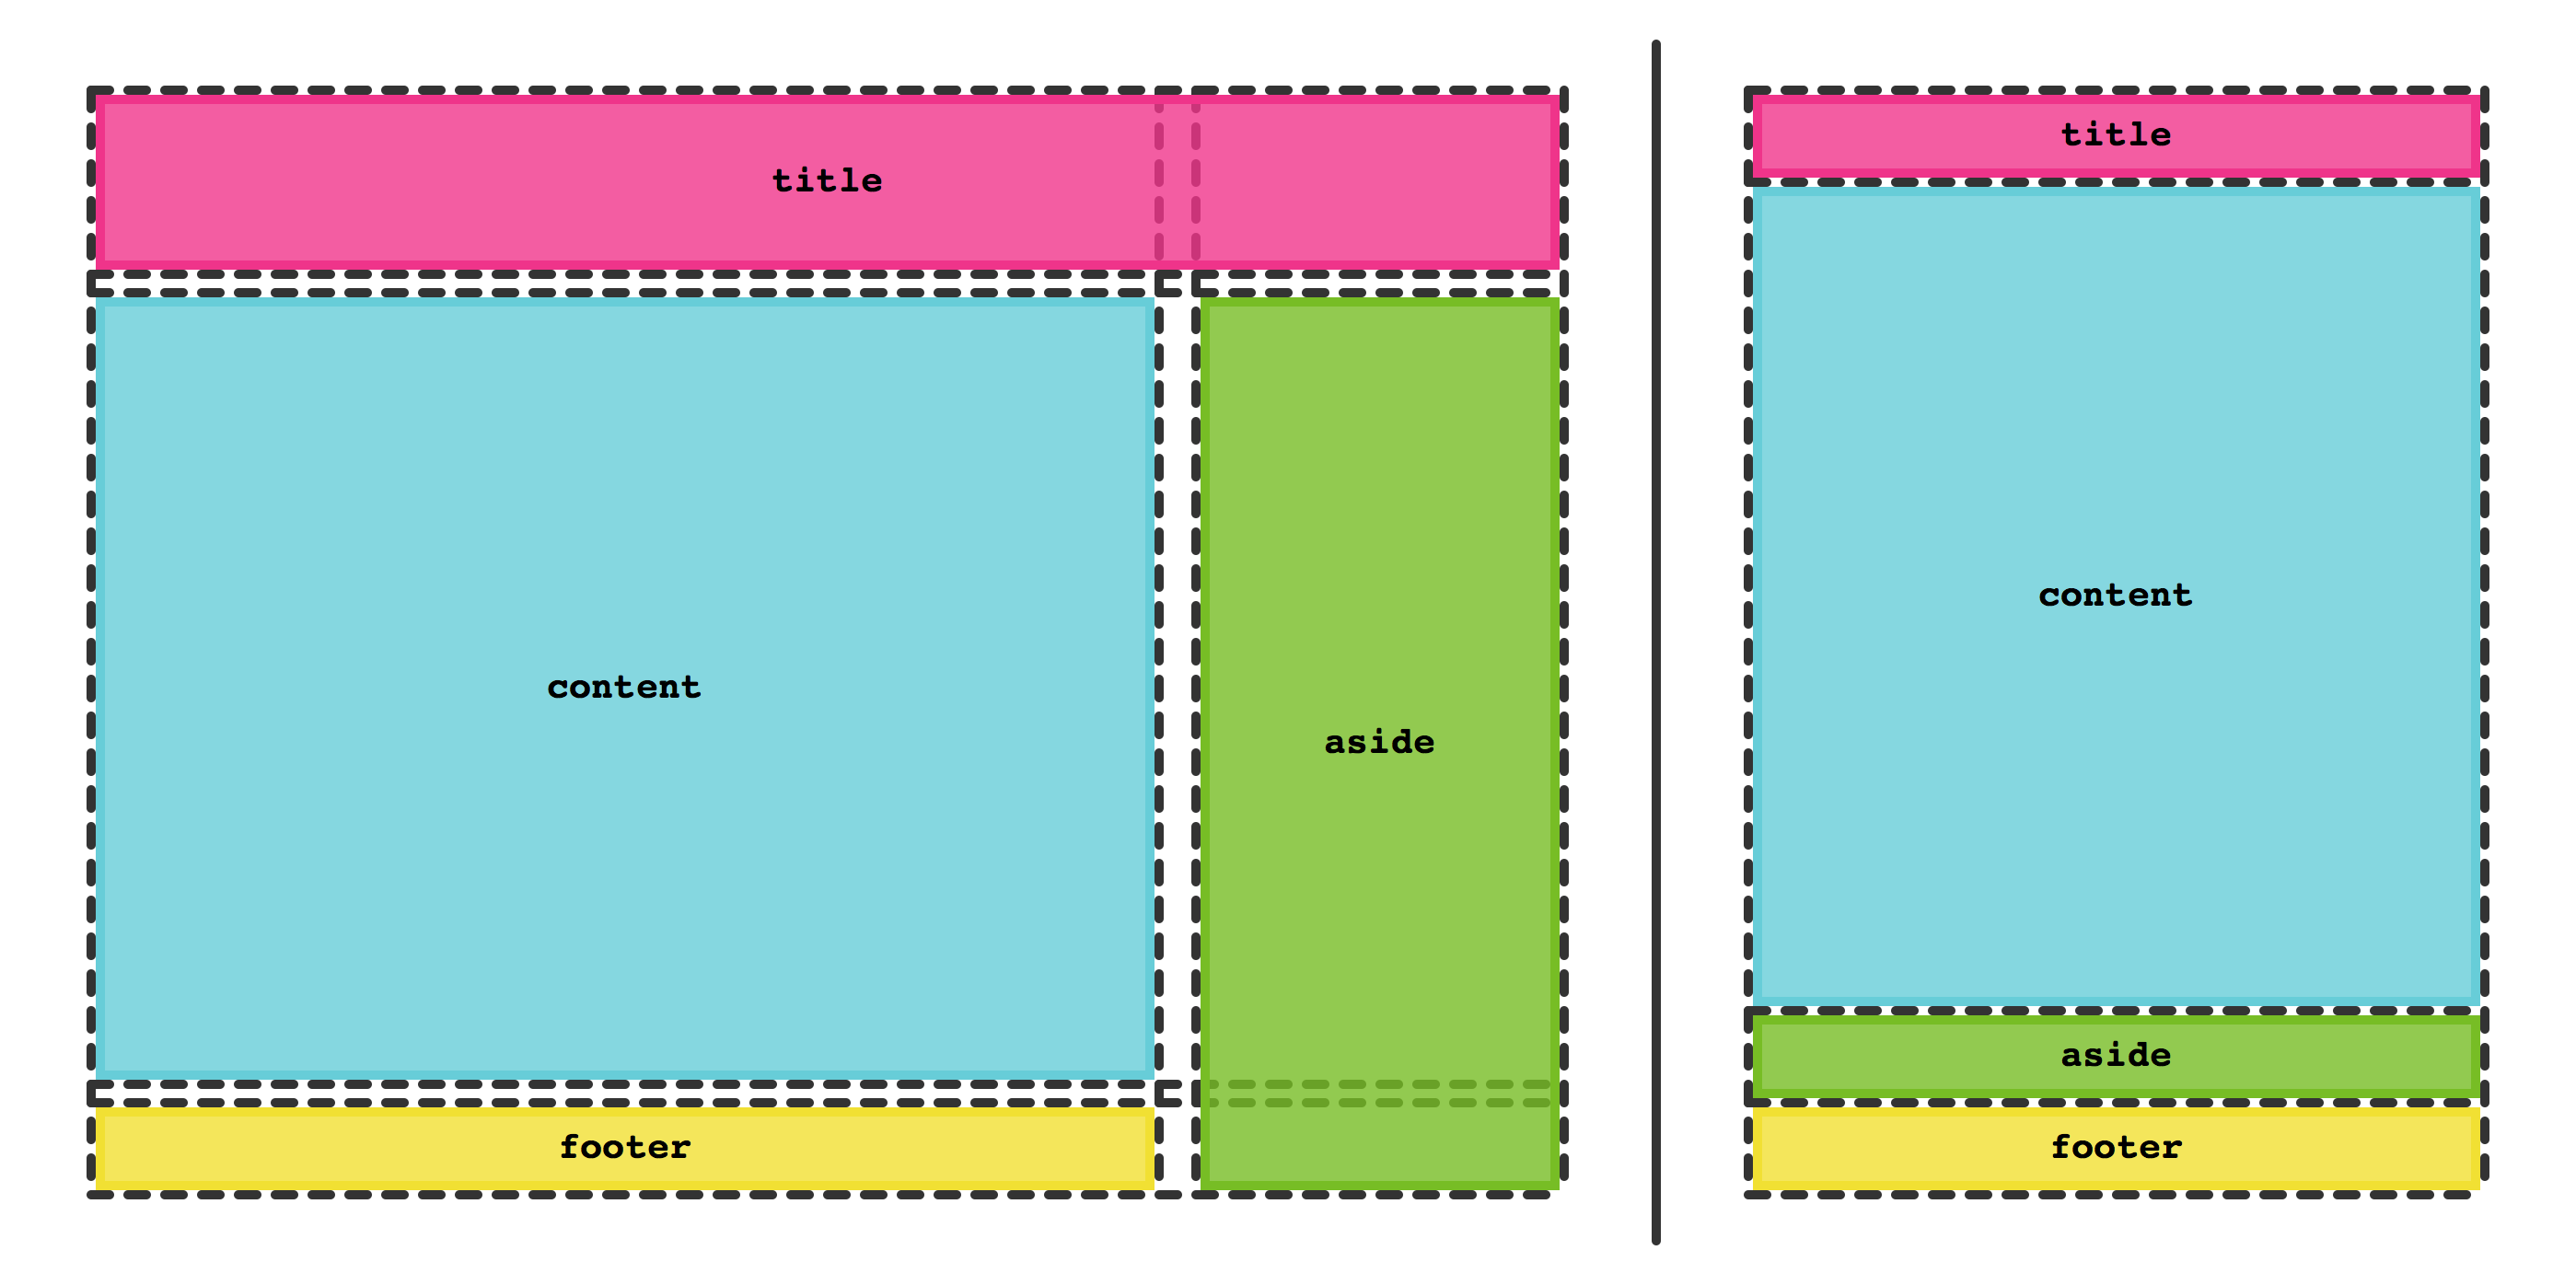 Responsive grid using flexible sizes and media queries